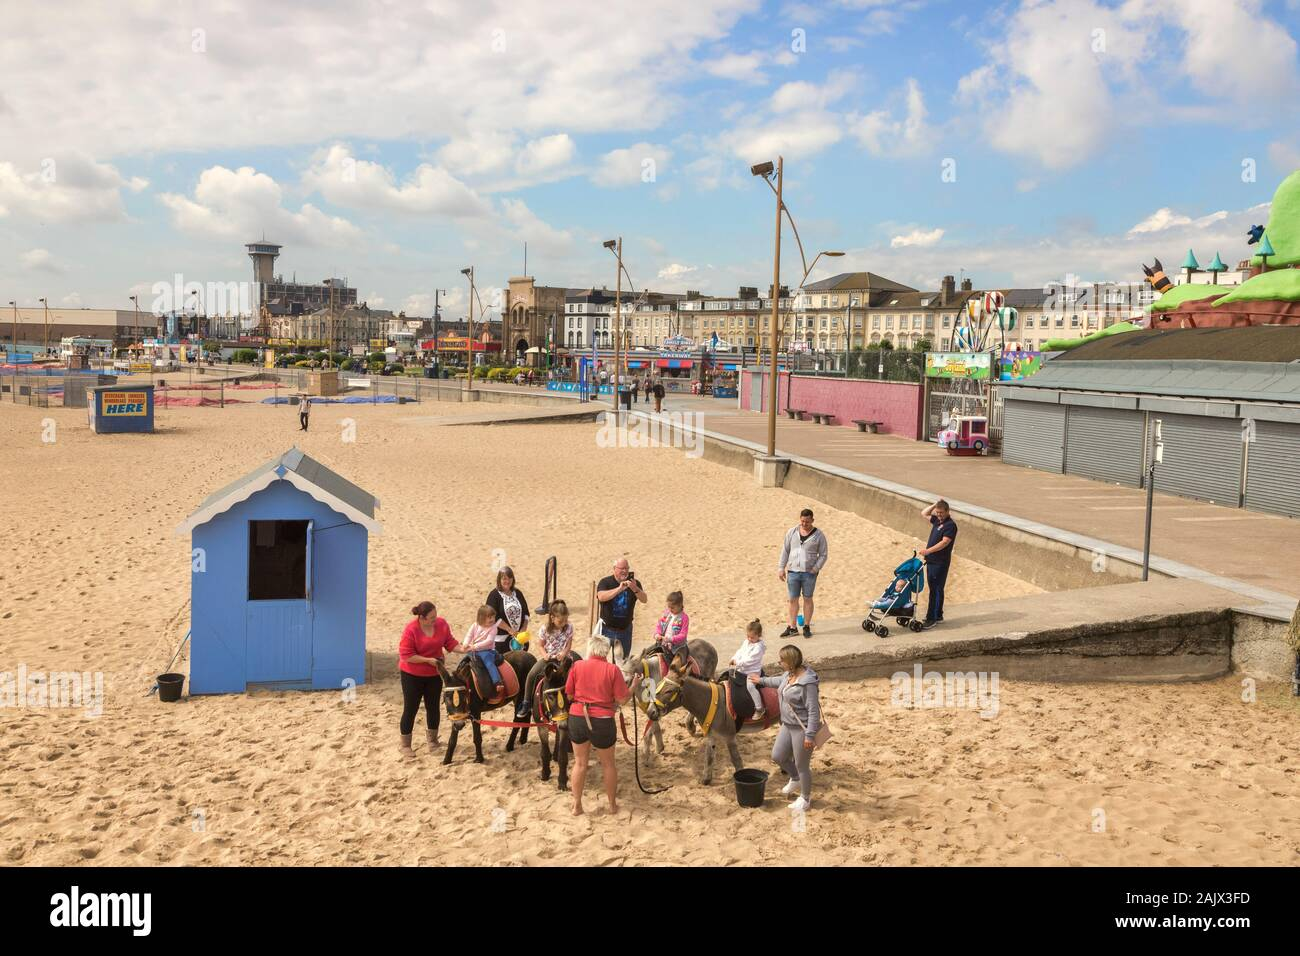 26 June 2019: Great Yarmouth, Norfolk, UK - Children riding donkeys at the beach, with parents assisting. Stock Photo